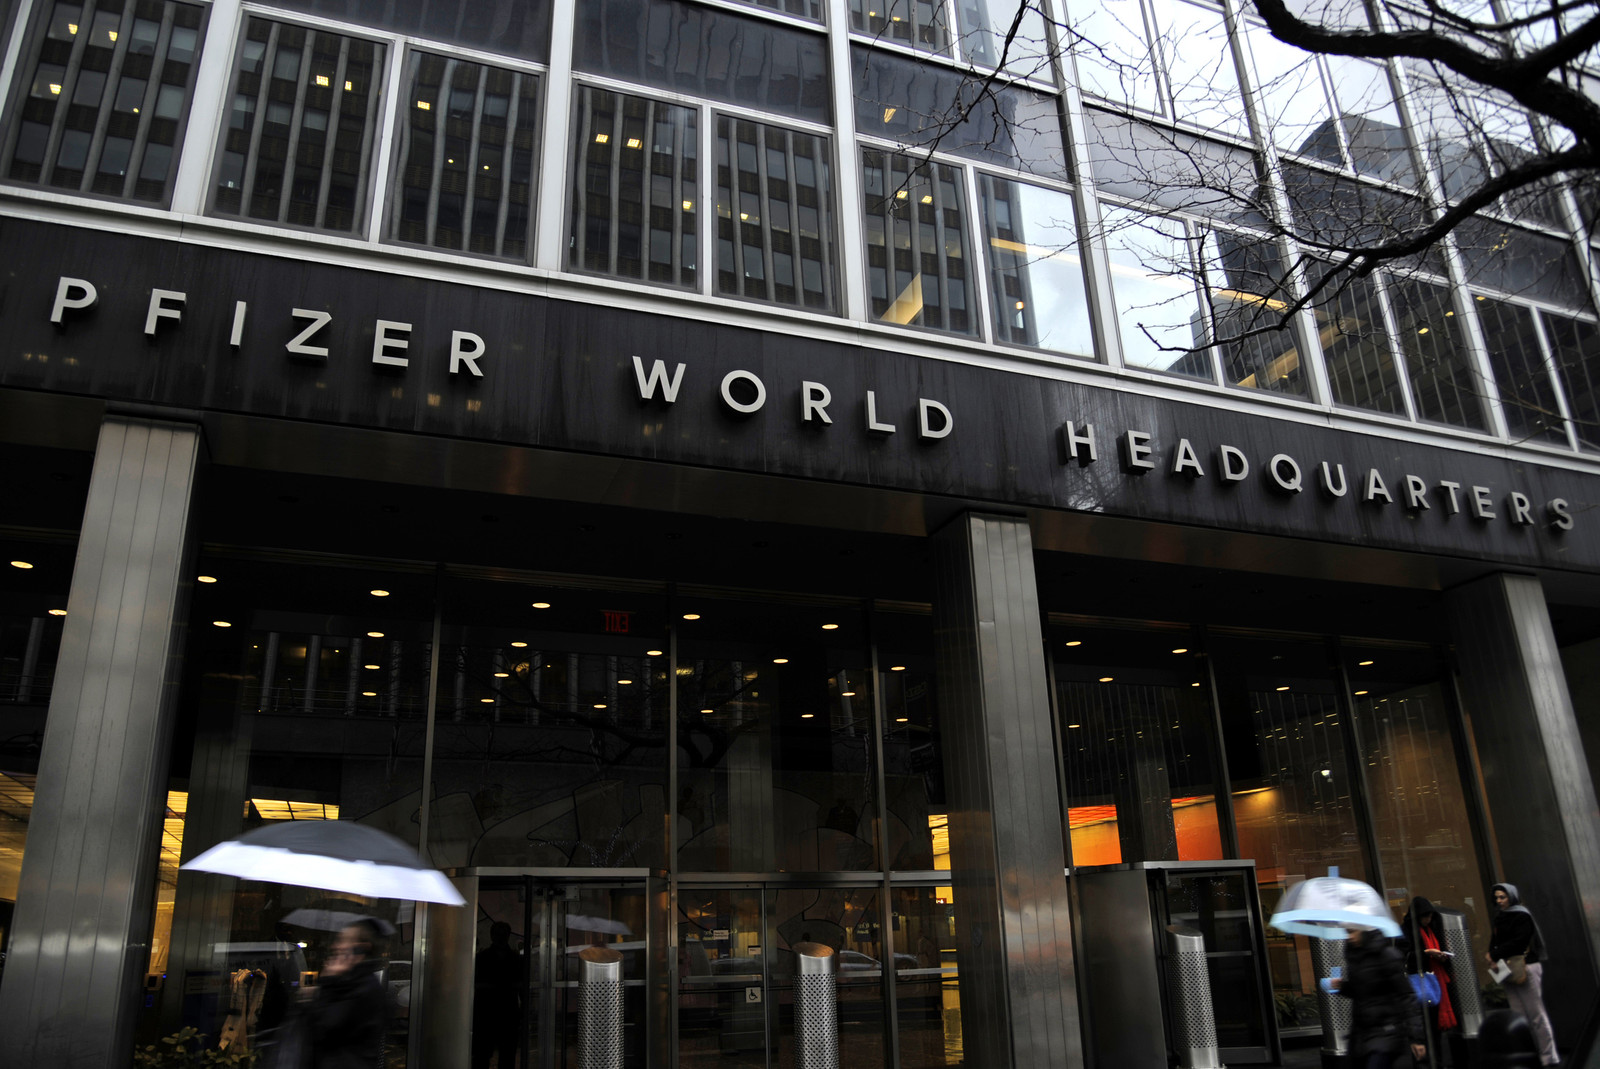 Pfizer World Hq